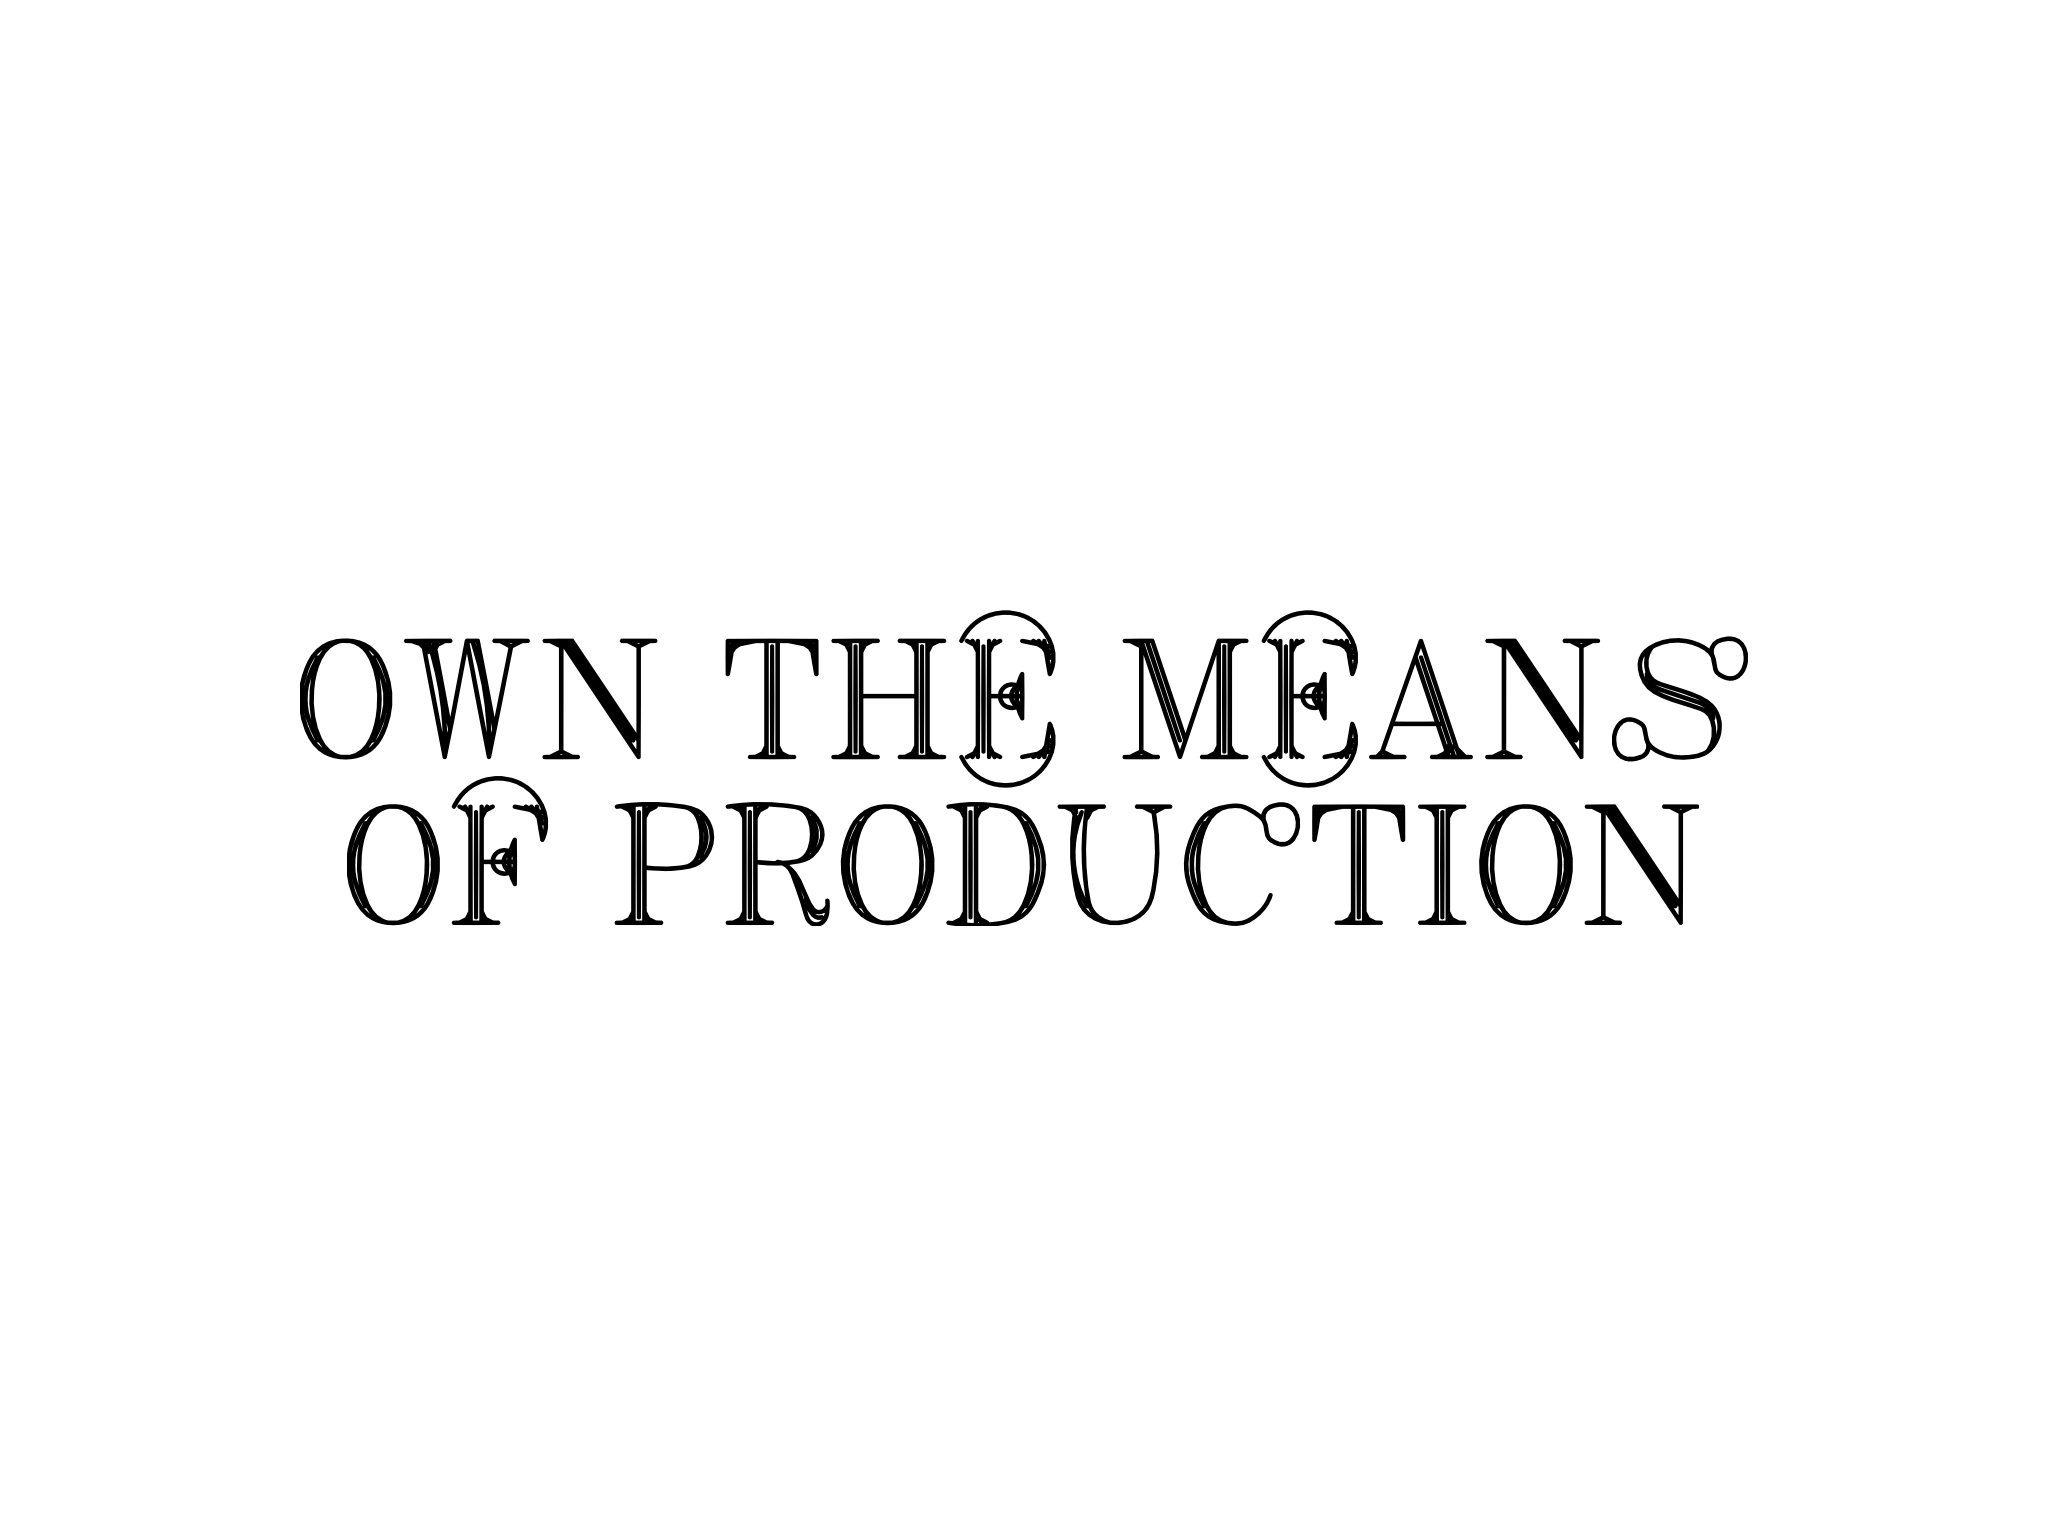 Own the means of production